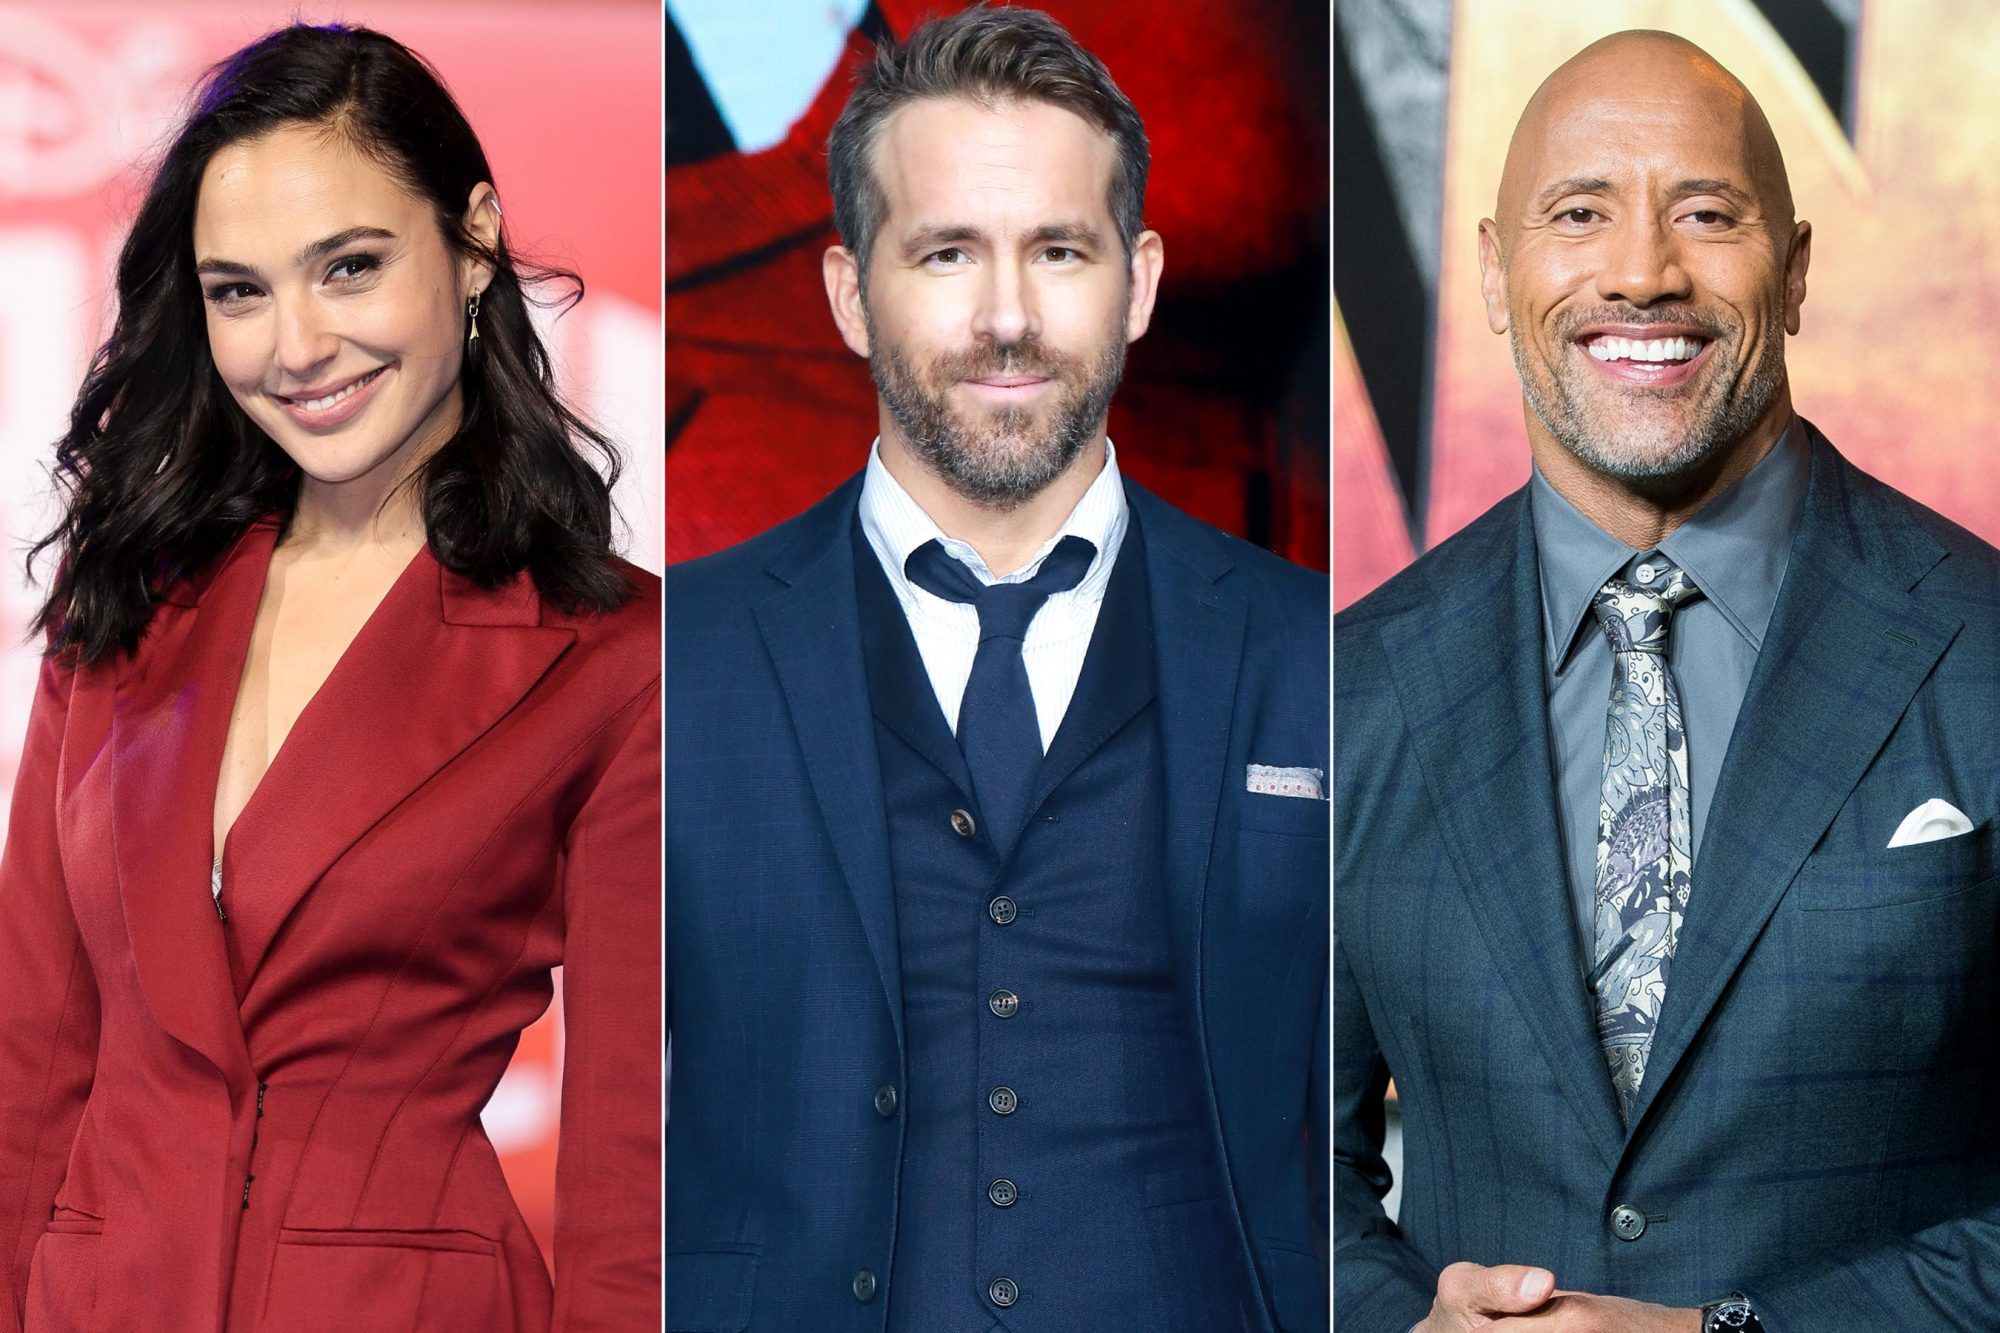 """LONDON, ENGLAND - NOVEMBER 25: Gal Gadot attends the European Premiere of """"Ralph Breaks The Internet"""" at The Curzon Mayfair on November 25, 2018 in London, England. (Photo by Mike Marsland/Mike Marsland/WireImage) BEIJING, CHINA - JANUARY 20: Actor Ryan Reynolds attends the premiere of 'Deadpool 2' at Park Hyatt Hotel on January 20, 2019 in Beijing, China. (Photo by VCG/VCG via Getty Images) LONDON, ENGLAND - DECEMBER 07: Dwayne Johnson attends the 'Jumanji: Welcome To The Jungle UK premiere held at Vue West End on December 7, 2017 in London, England. (Photo by Samir Hussein/Samir Hussein/WireImage)"""